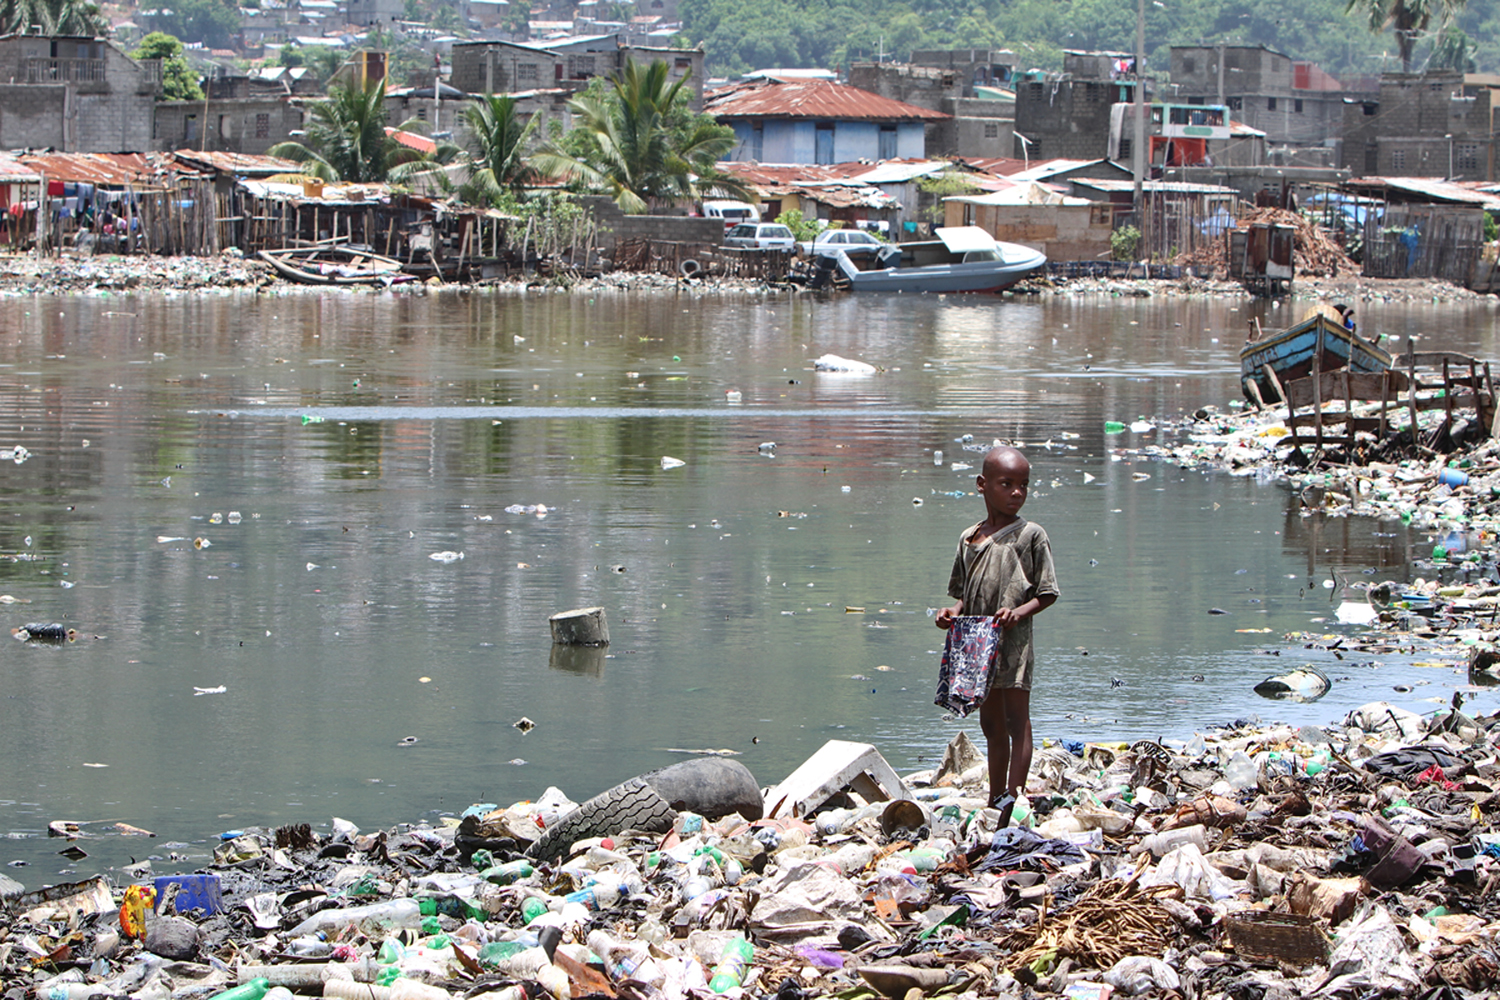 haitis with Haiti Food For The Poor on Haiti likewise Cholera as well Health Evidence furthermore Population as well Doors And Facades Of Jacmel.